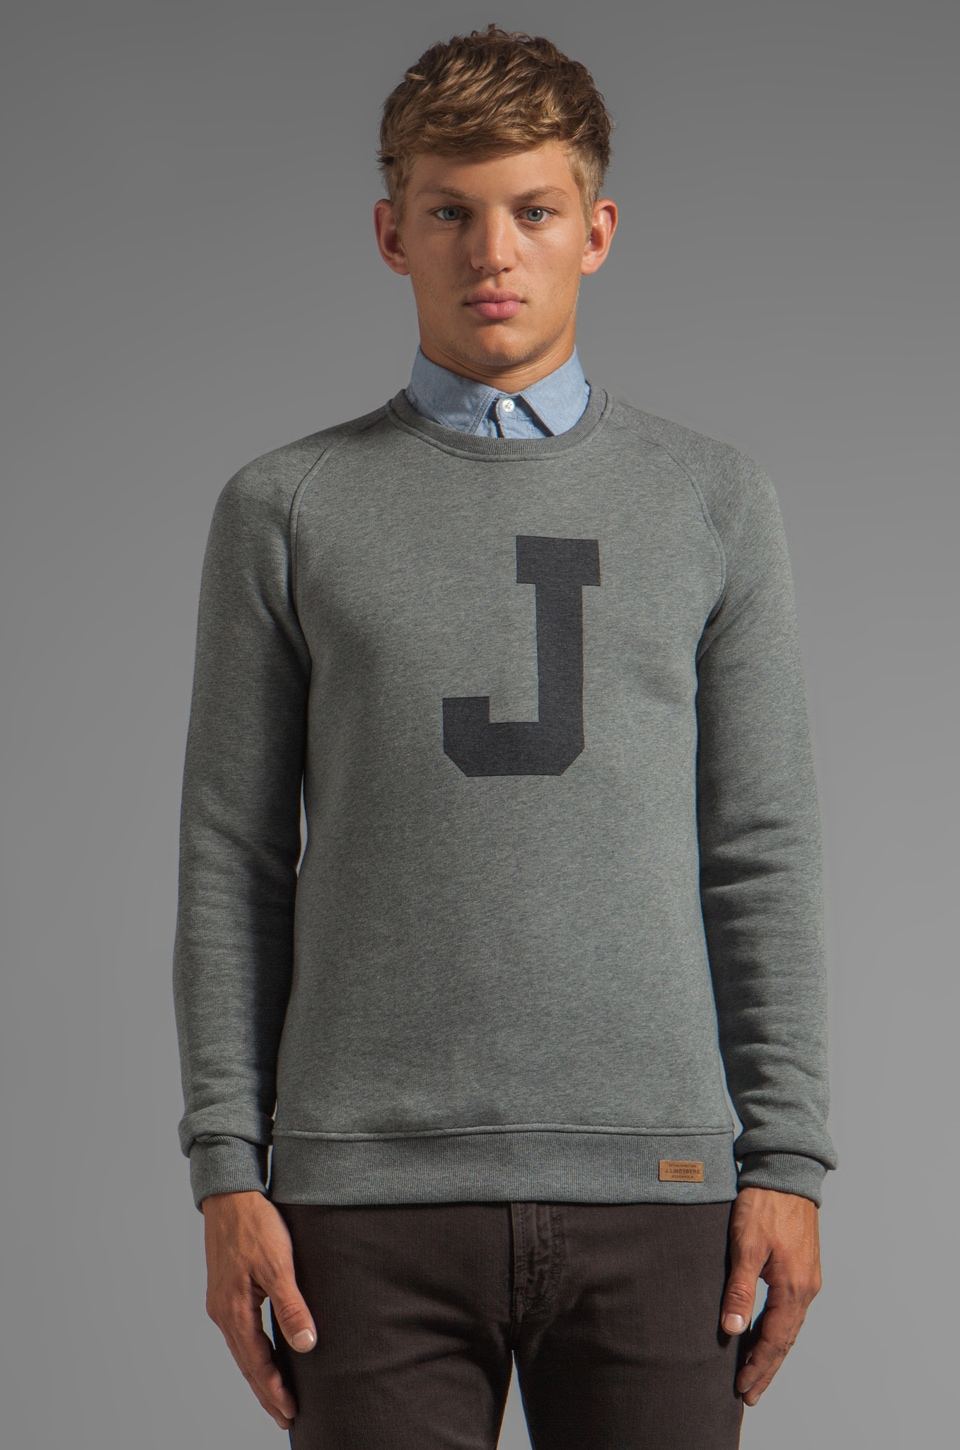 J. Lindeberg Chad Pullover in Light Grey Melange